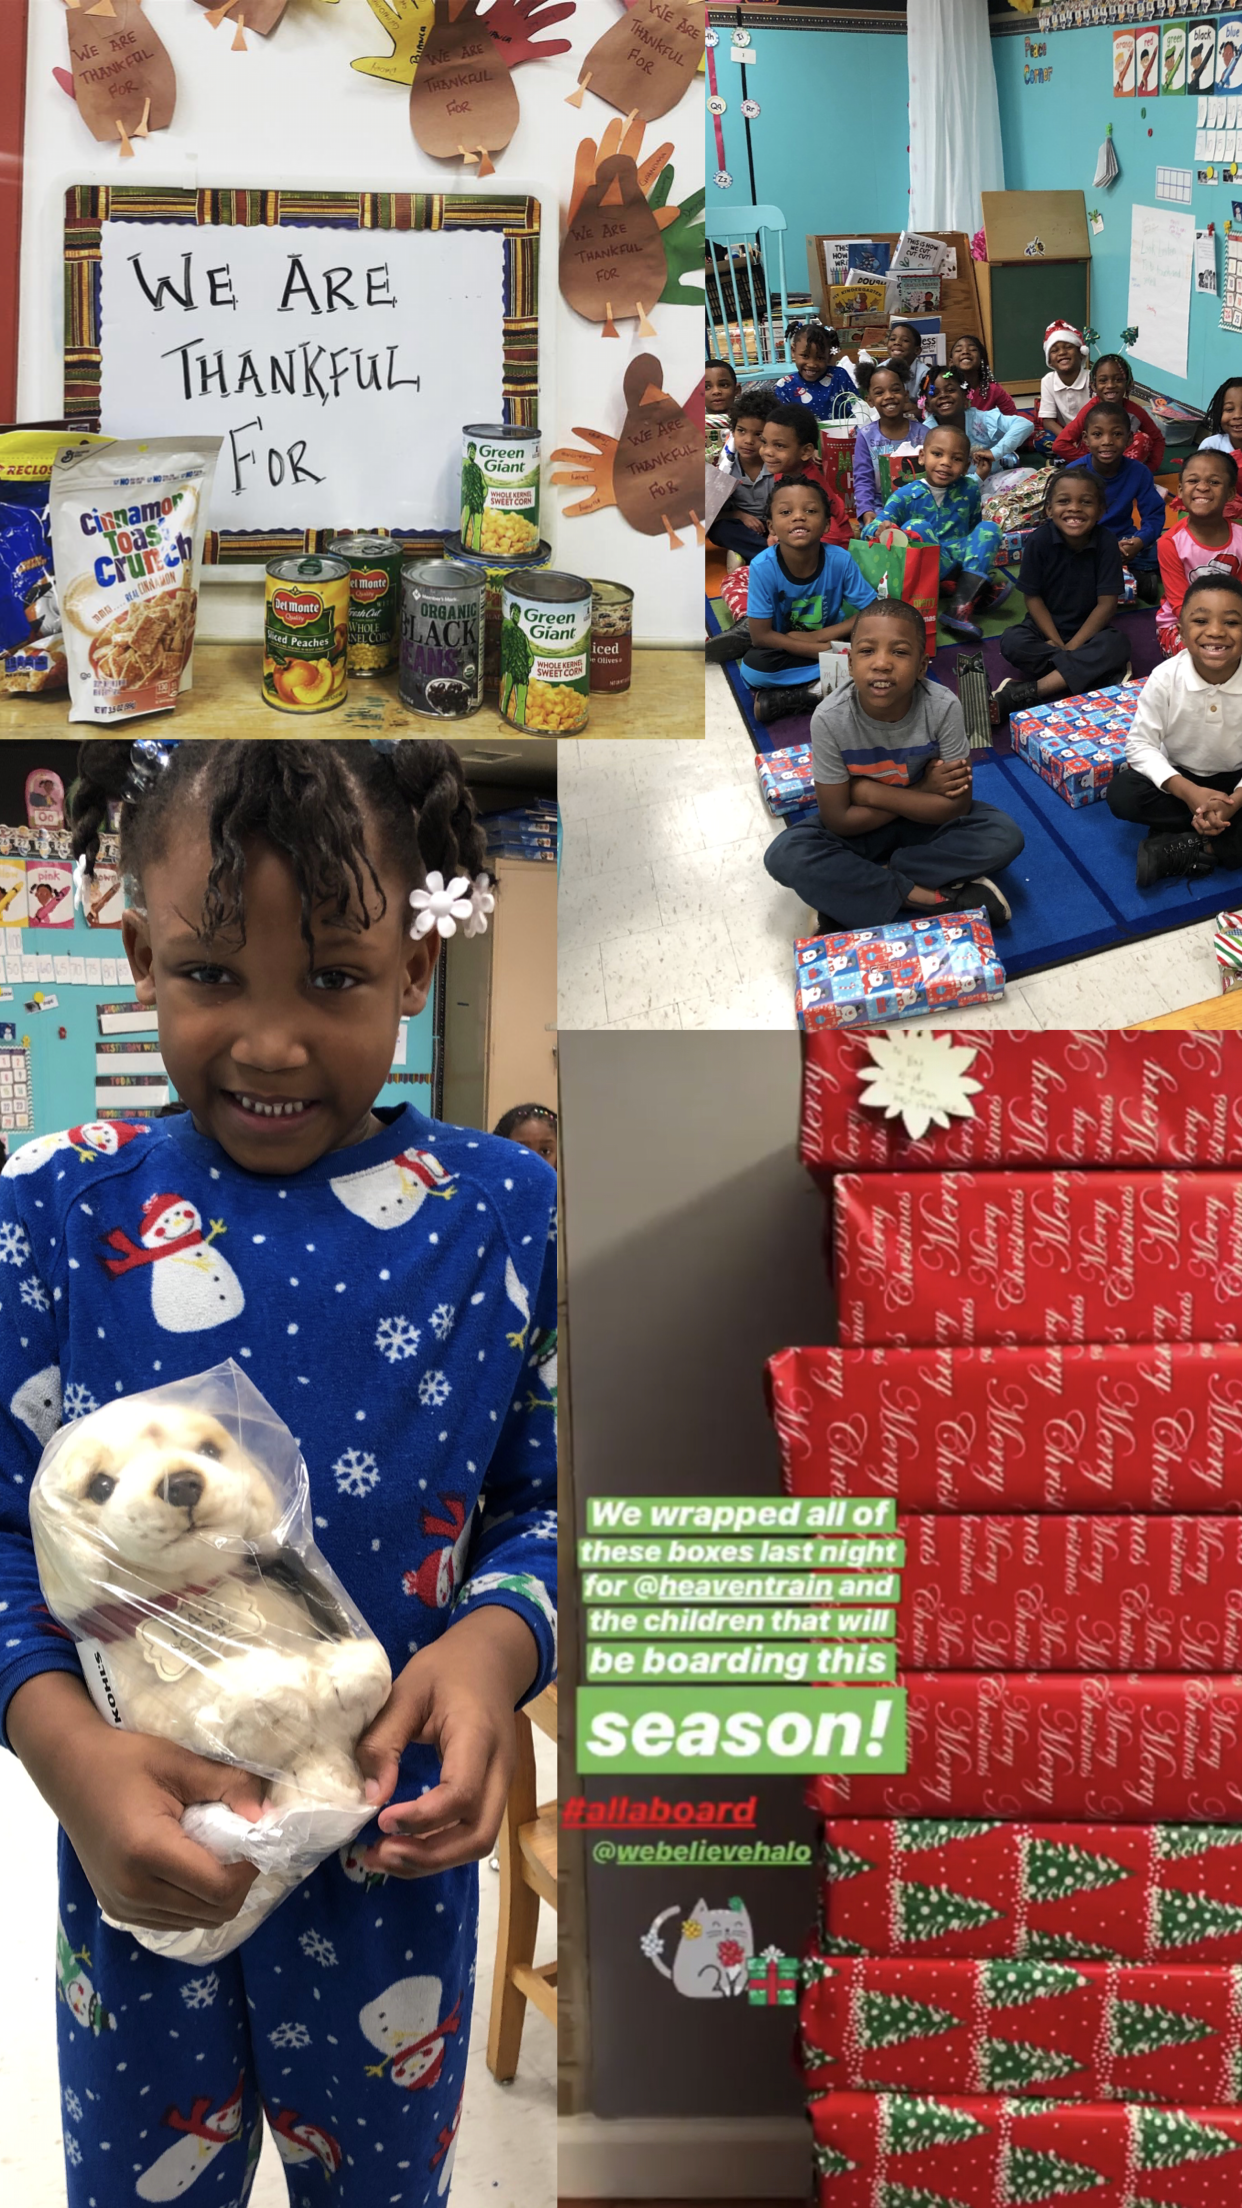 November- December 2018 - This Holiday season, Our team gave back in a huge way! In collaboration with #givingtuesday we decided to ask our guest at a Thanksgiving inspired, Friendsgiving to bring can goods and other non-perishable goods for those in need. We were able to donate those items to the YWCA of Greater Cleveland. In December, we partnered with HeavenTrain, a mobile community organization that brings a spiritual word as well as food and clothing to an under-served community in Cleveland area. We gifted 10 surprise boxes for boys and girls to be distributed throughout the holiday. Lastly, We were able to give gifts to a local classroom in another under-served Cleveland community. We were so honored to serve so many and hope that they will be forever touched as we are.To learn more about the HeavenTrain, Click Below!